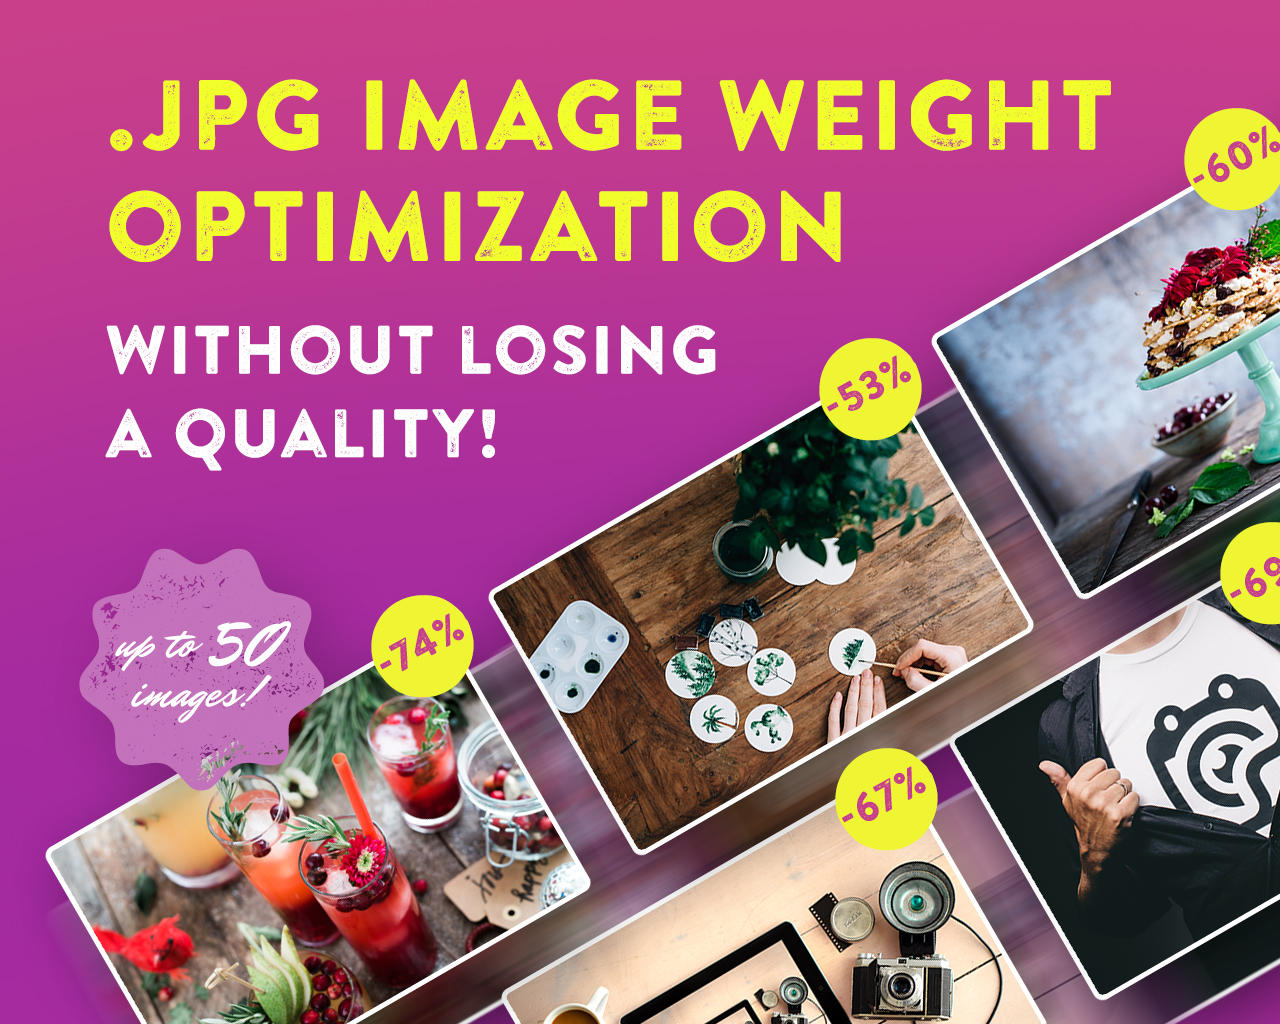 Image Weight Optimization Without Loss in Quality (.jpg, up to 50) by friskweb - 107009